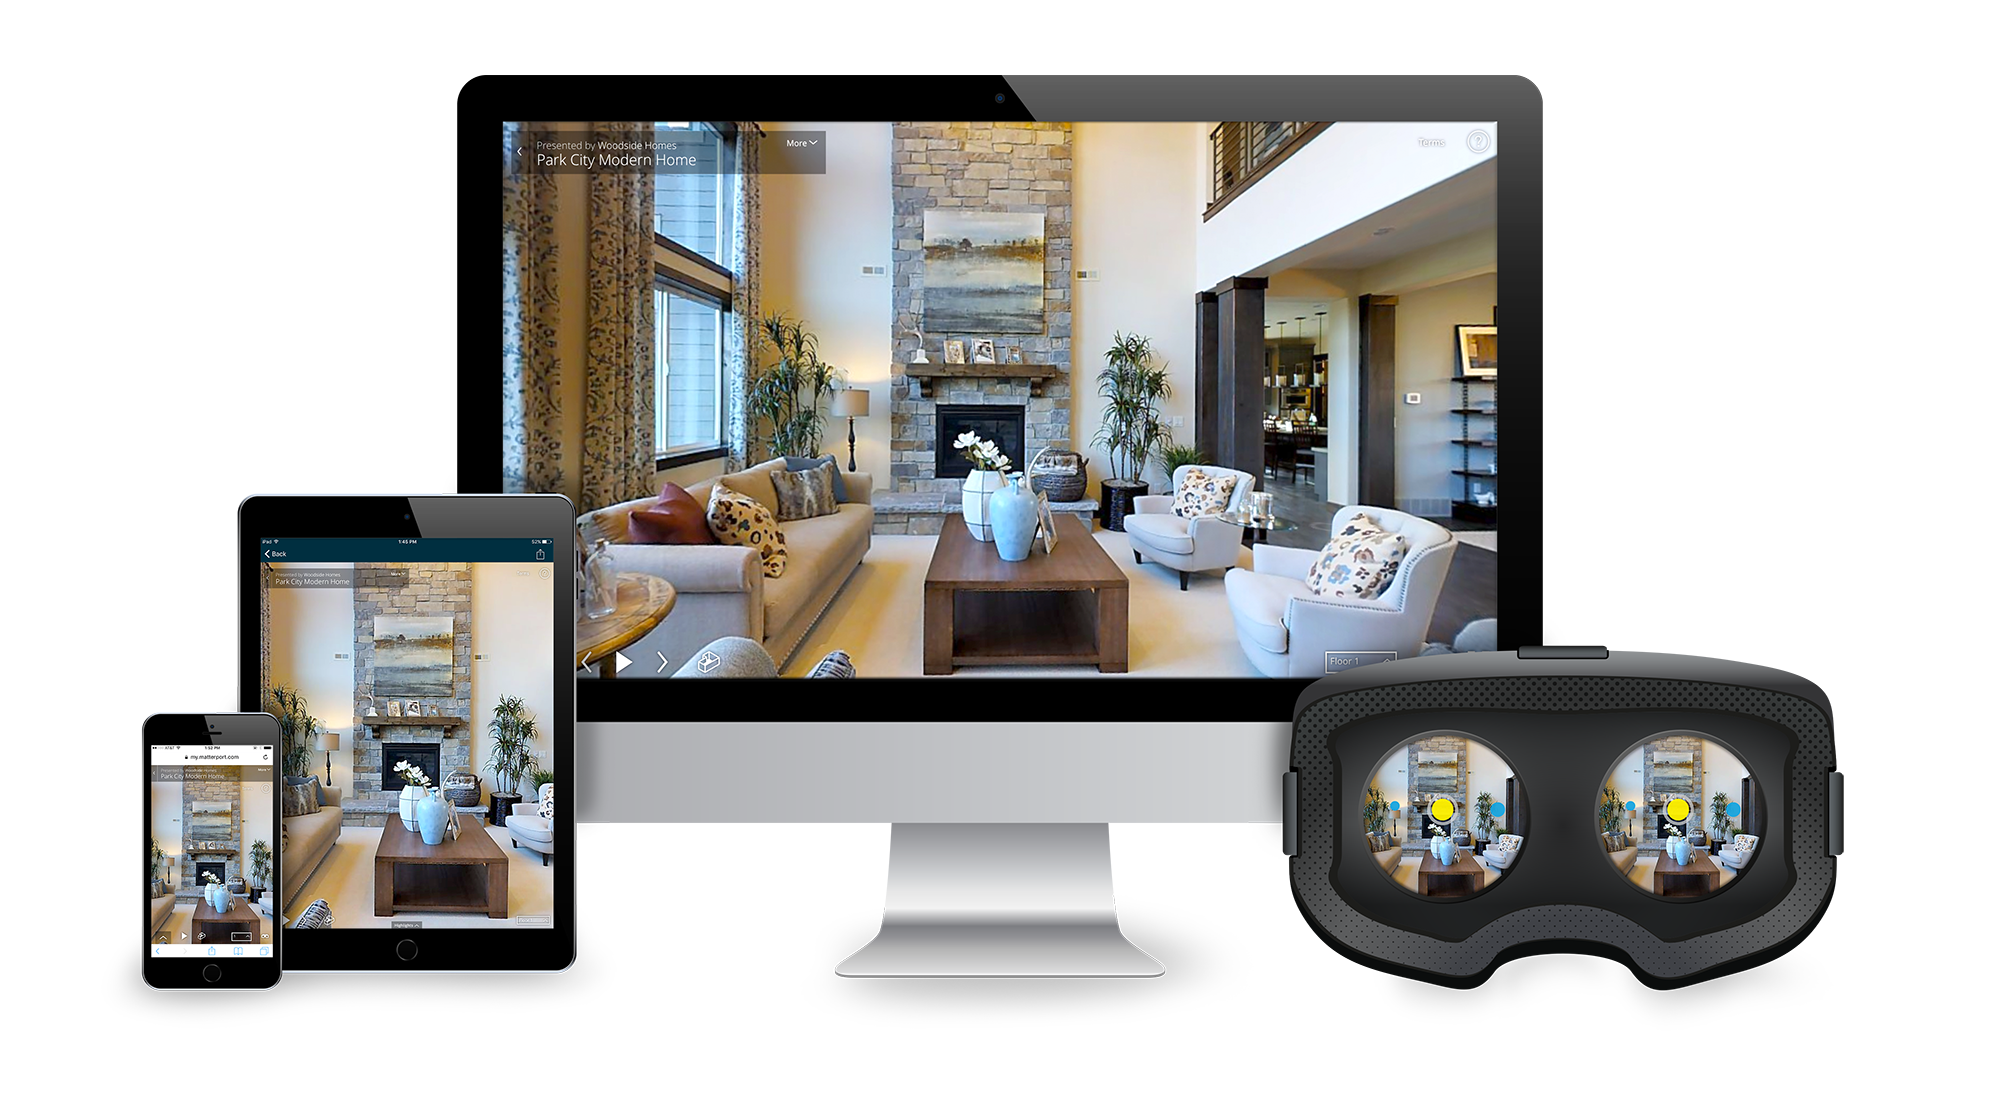 mac, ipad, iphone, VR goggles displaying matterport software example